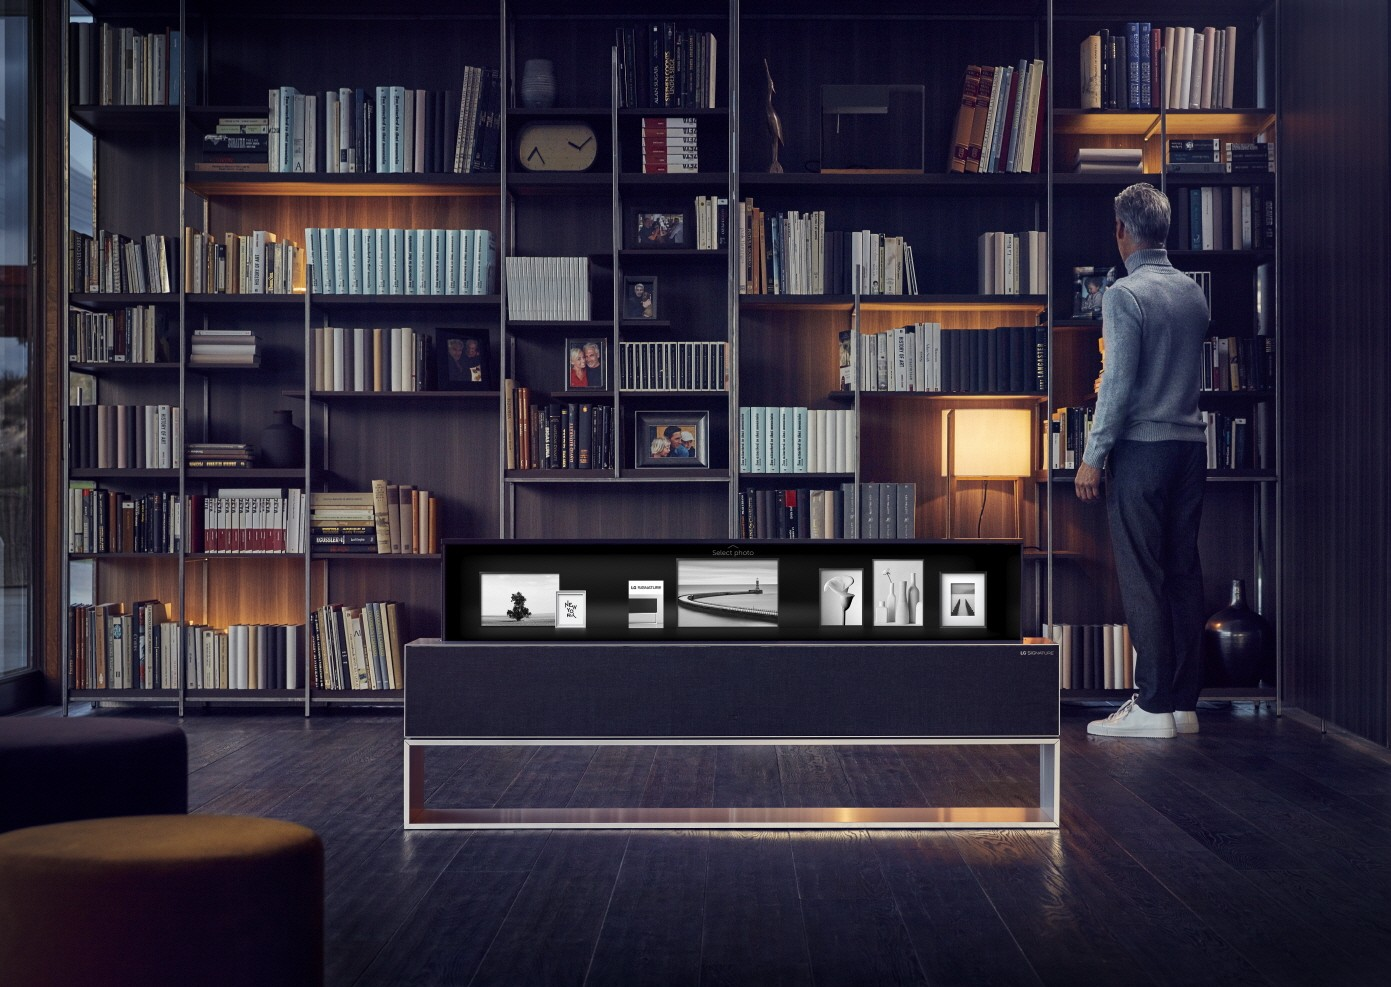 The LG SIGNATURE OLED TV R model 65R9 in its Line View in someone's study